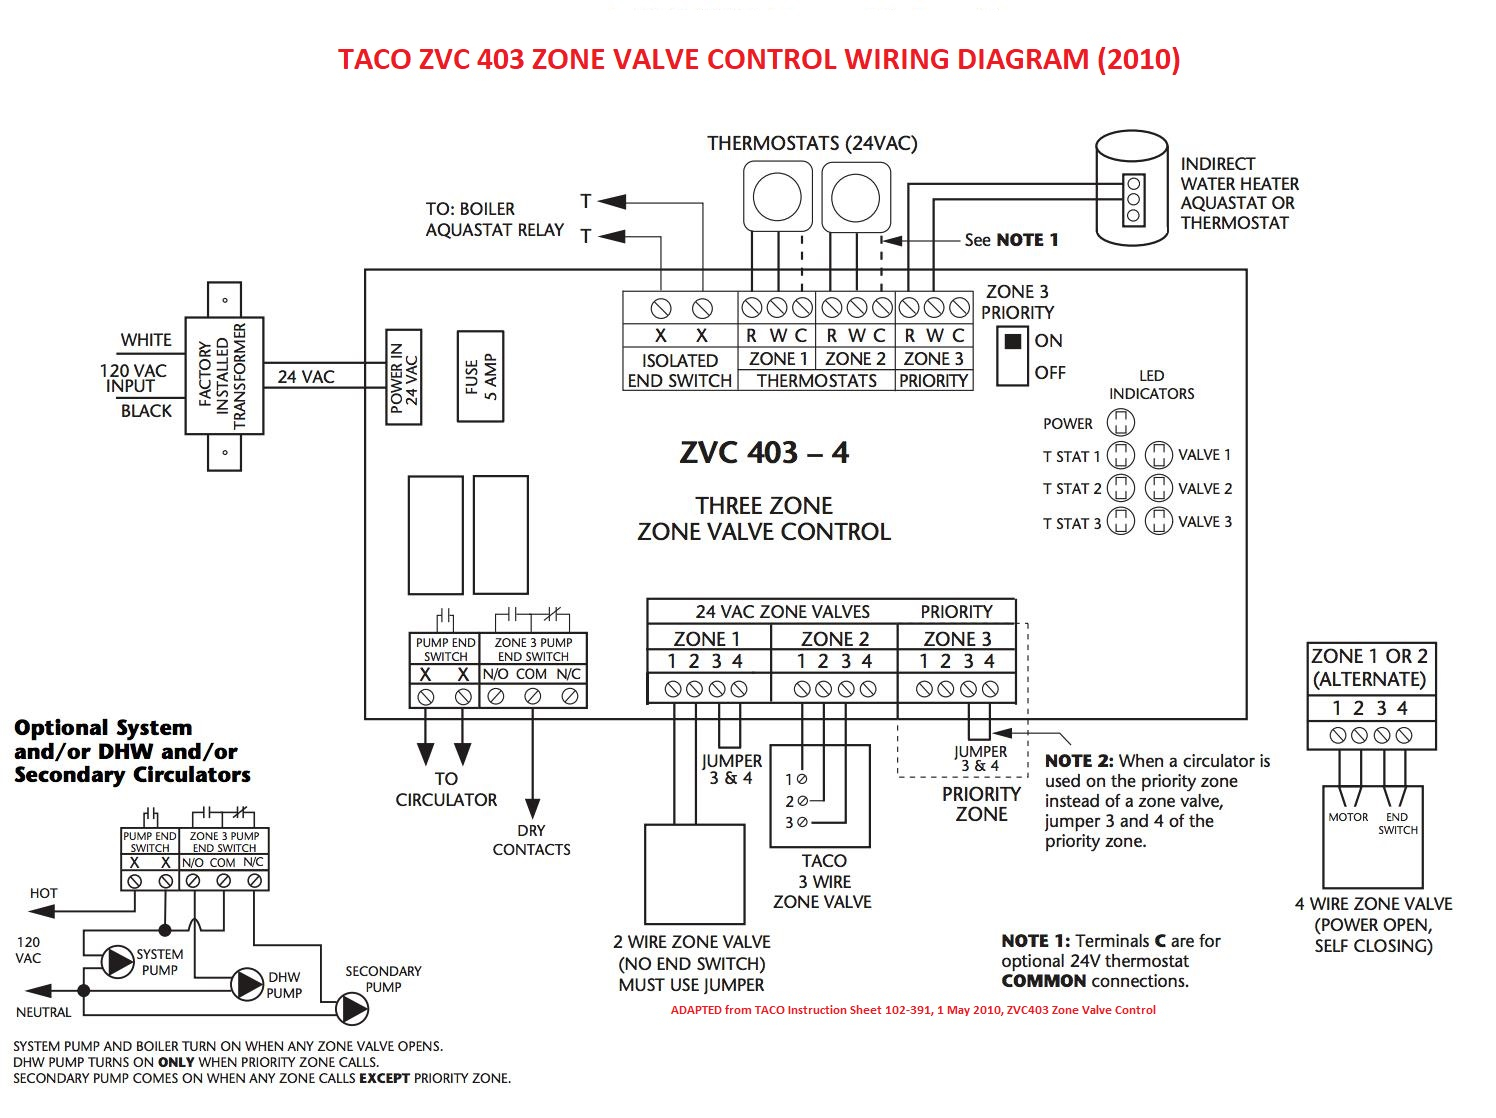 taco 3 wire zone valve wiring diagram Collection-Taci ZVC493 wiring diagram click to enlarge at InspectApedia Individual Hydronic Heating Zone Valve 20-d